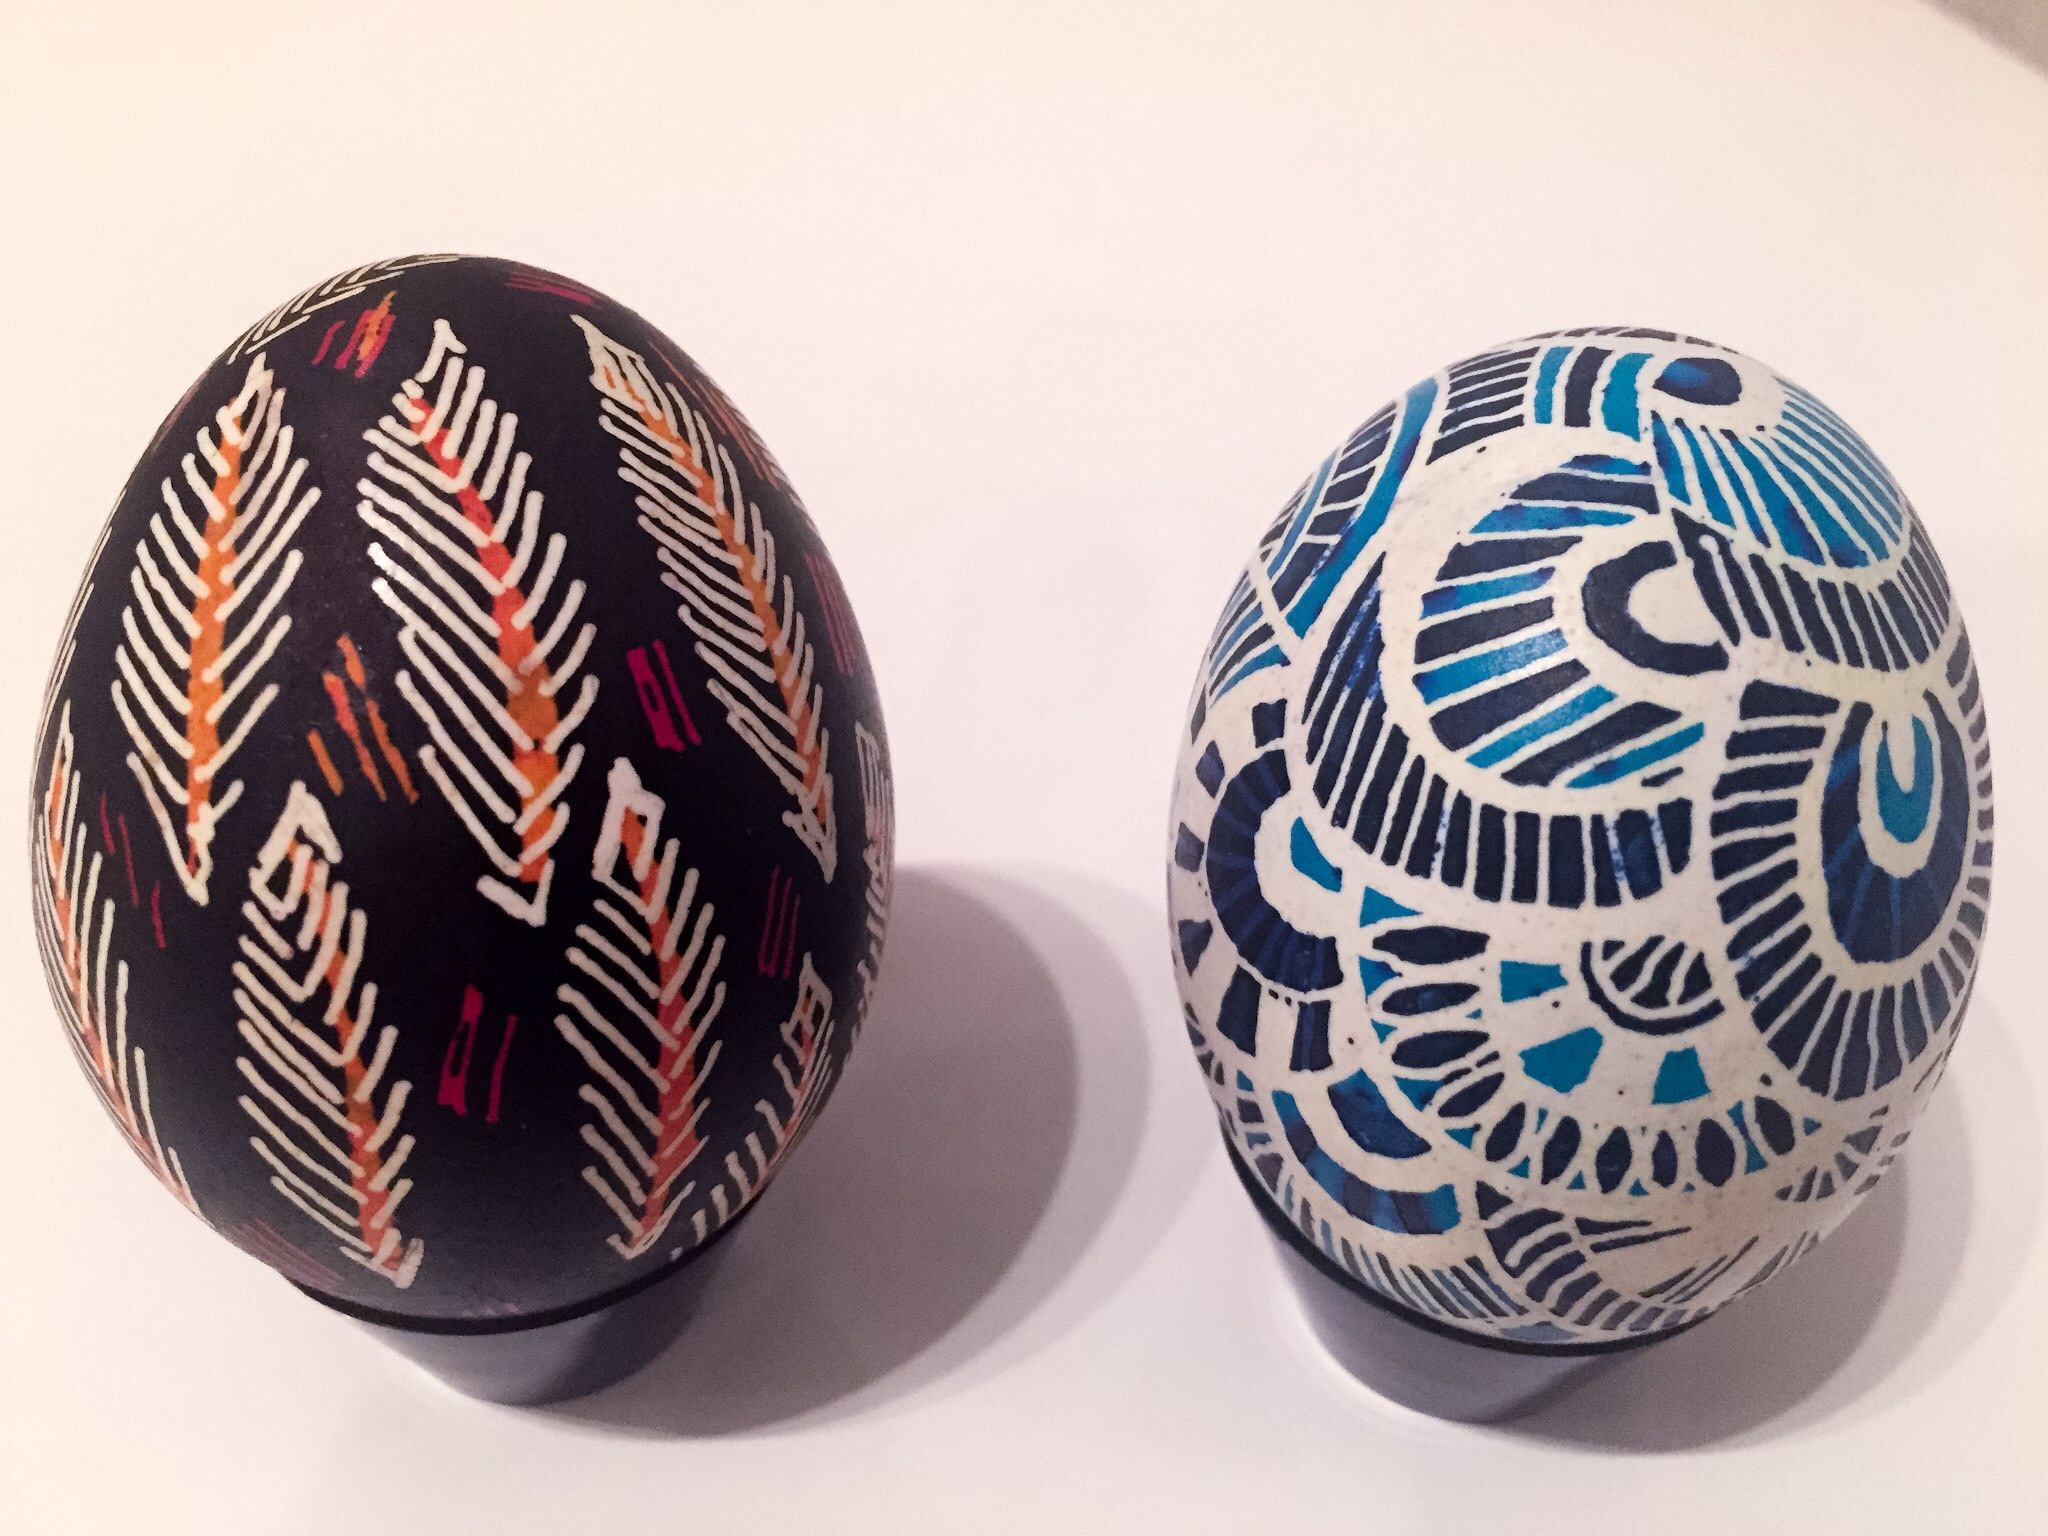 Psyanky - Ukrainian Easter Eggs